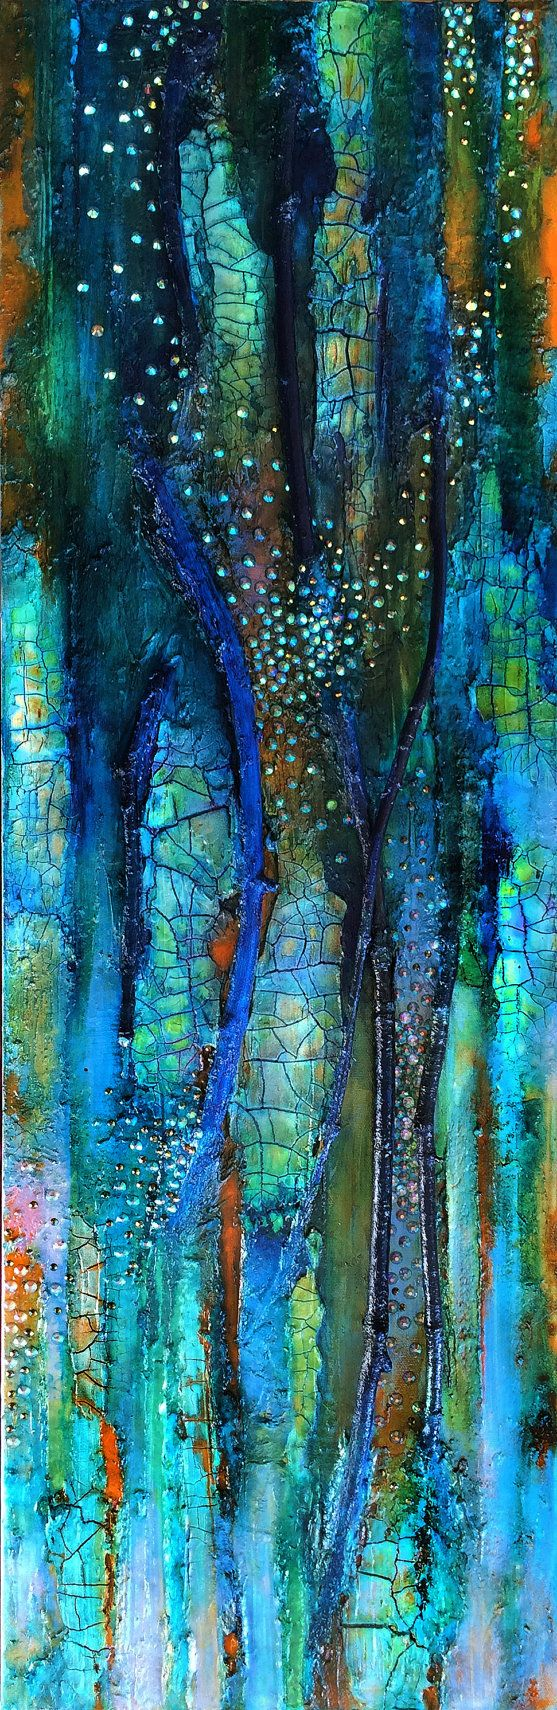 Mixed media canvas eternal spring crackle painting by abyssimo art